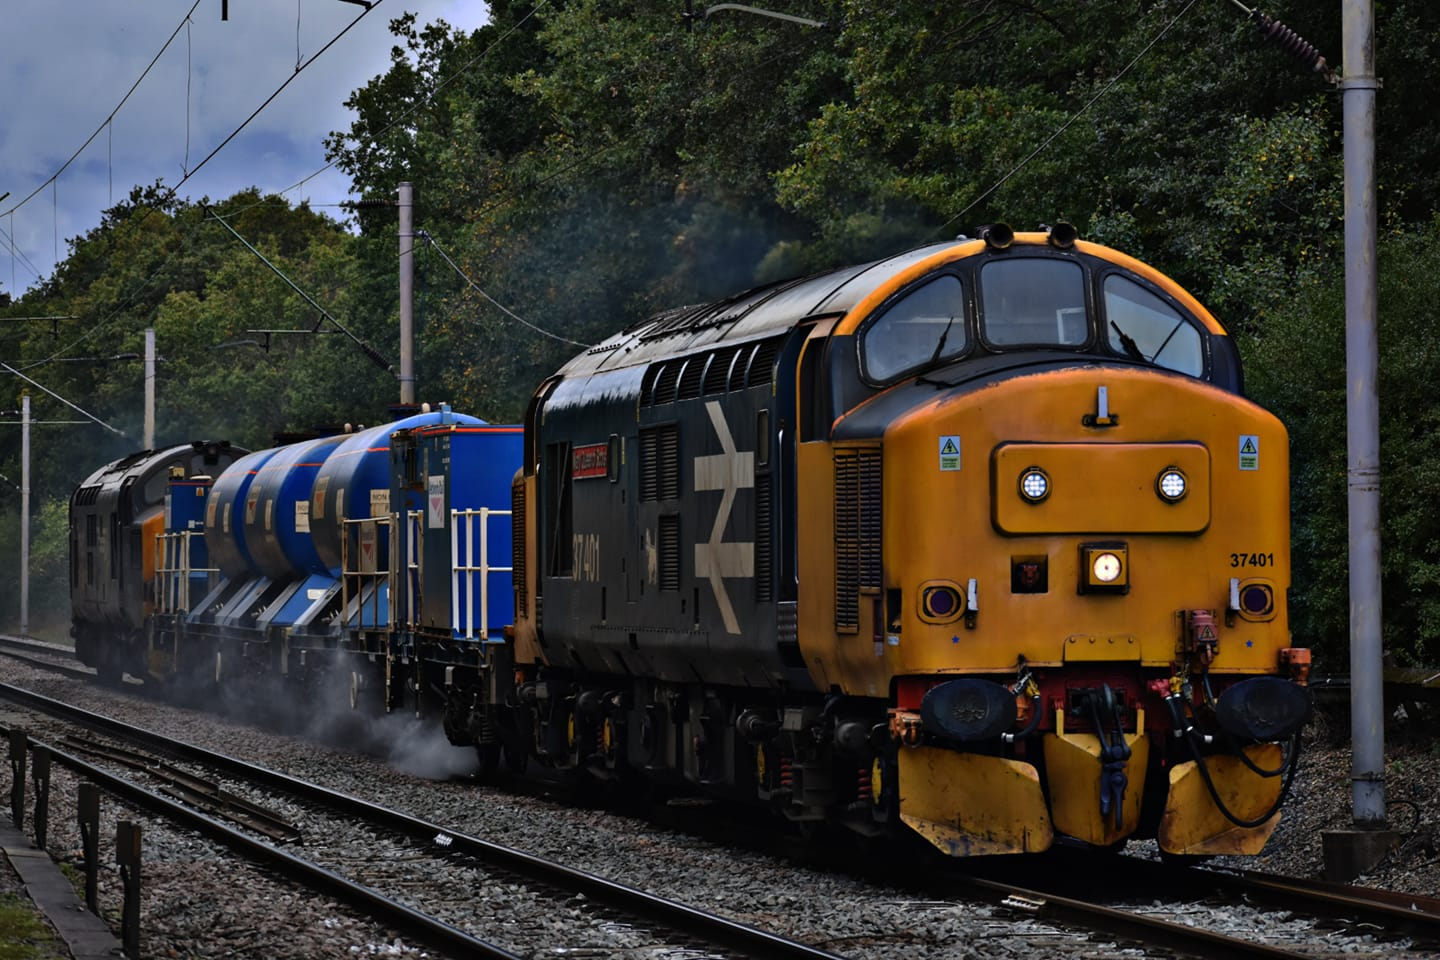 37401 DRS RHTT (CHITTS HILL) 30-9-20 (J COLE)